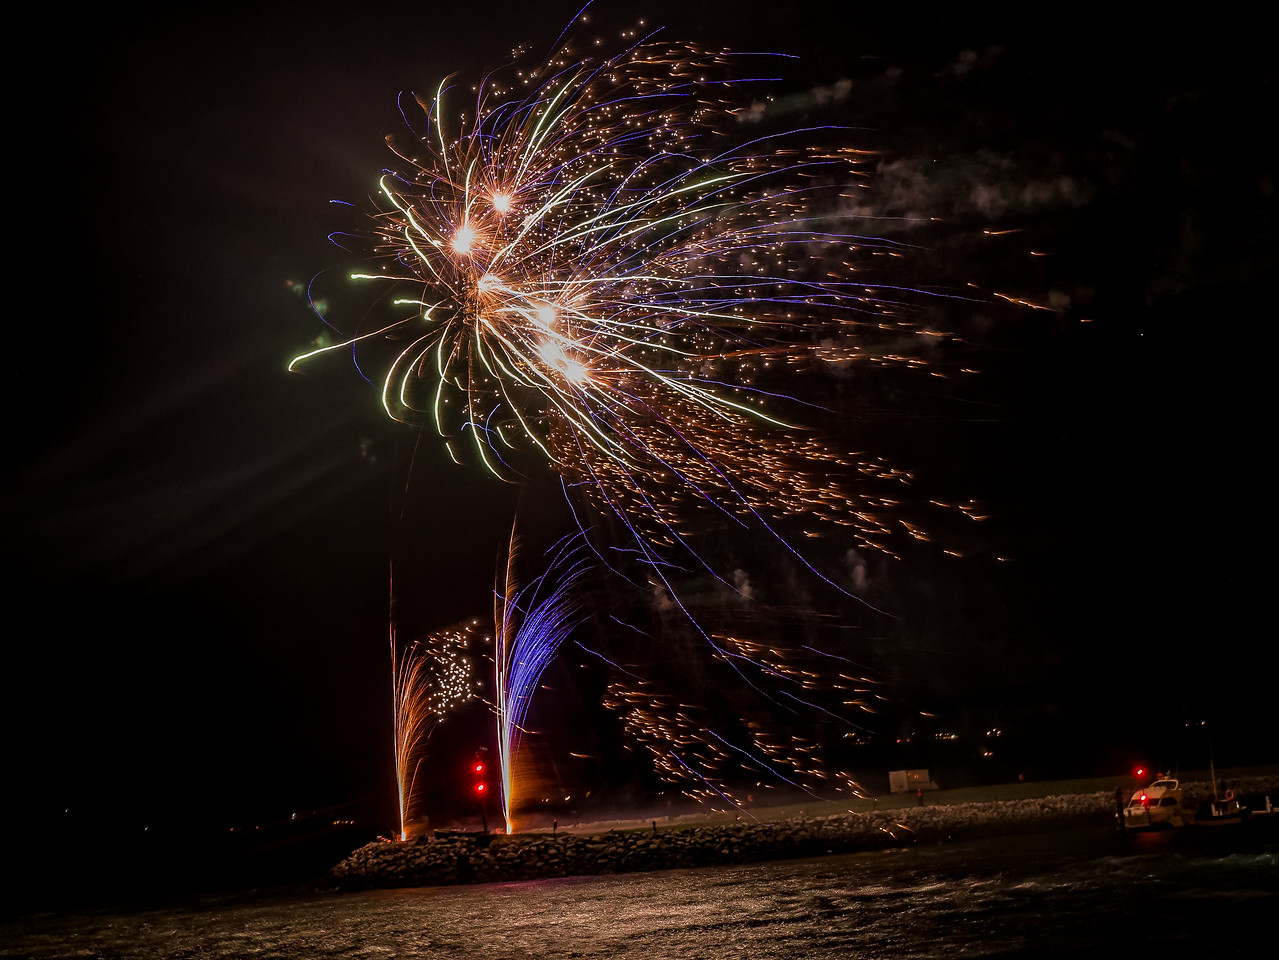 Dingle Ireland had an amazing show of Fireworks last night . Happy New Year to everybody